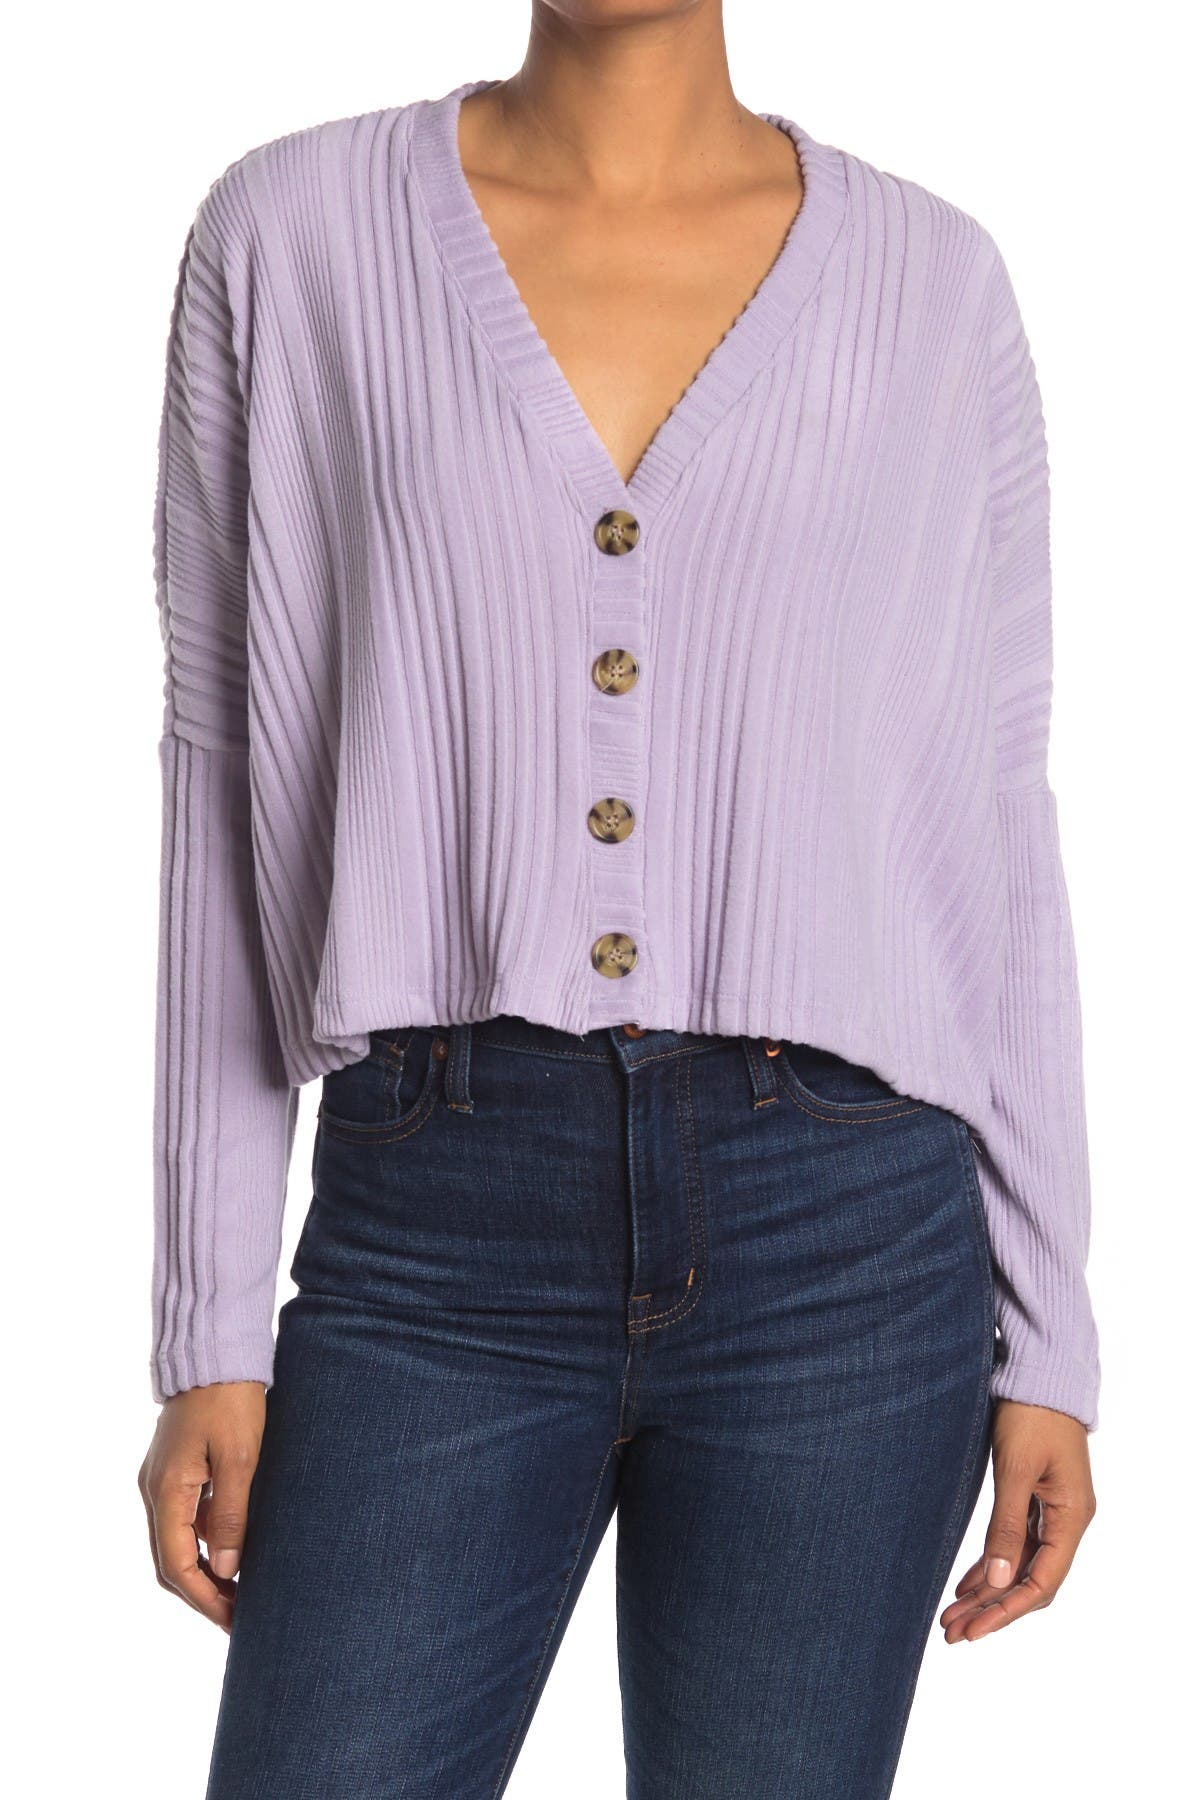 Image of LA LA LAND CREATIVE CO Ribbed Crop Cardigan